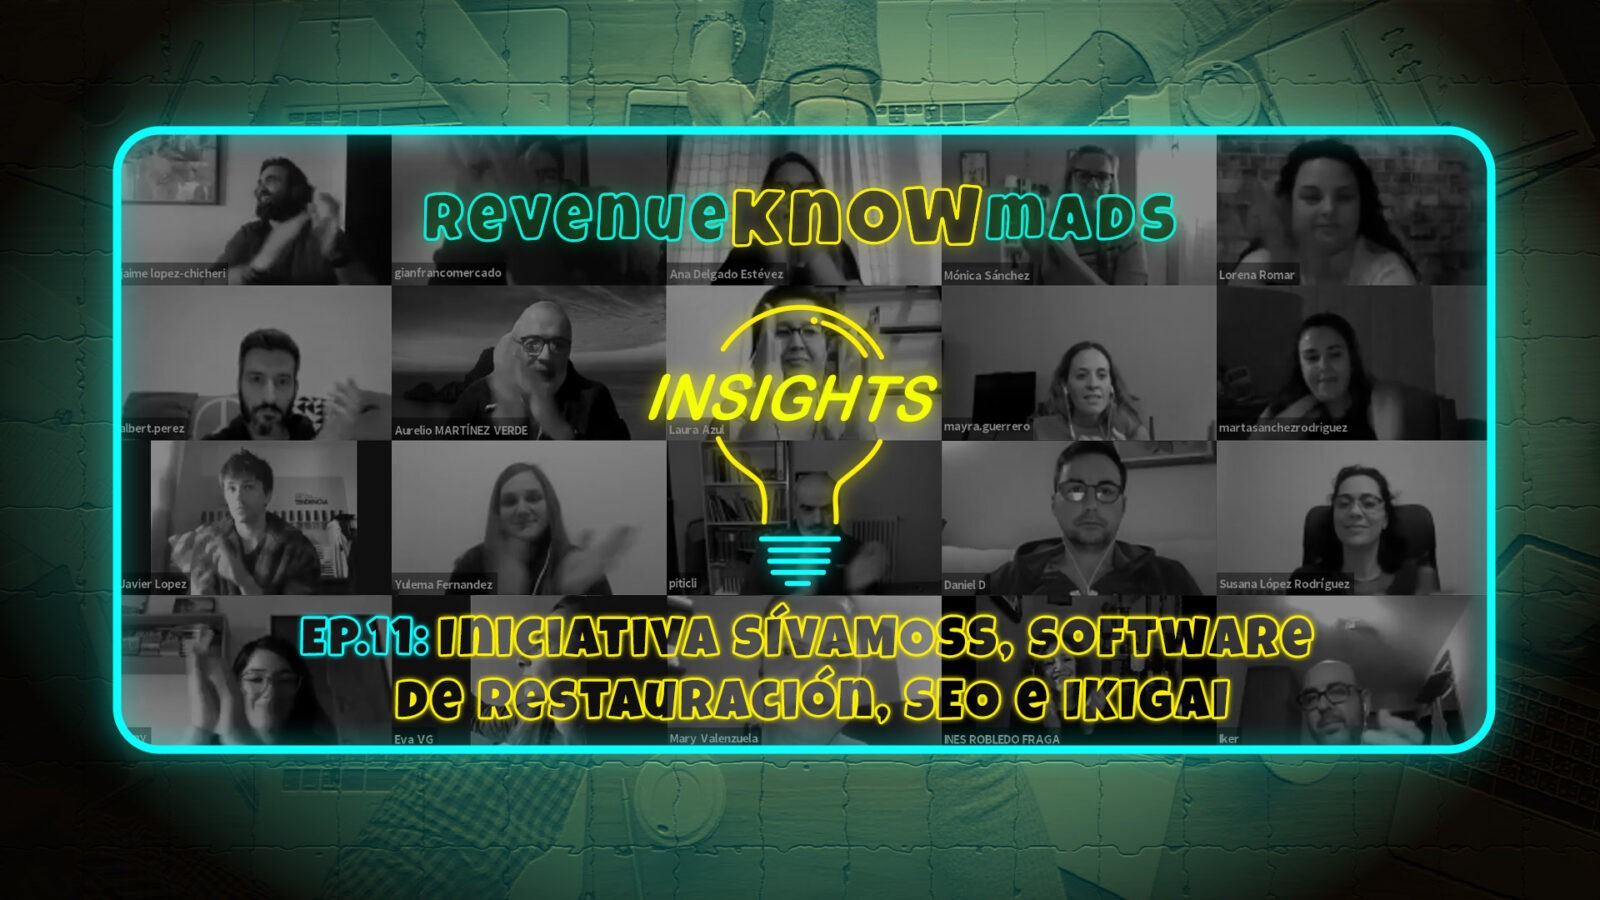 RevenueKnowmads Insights - Ep.11